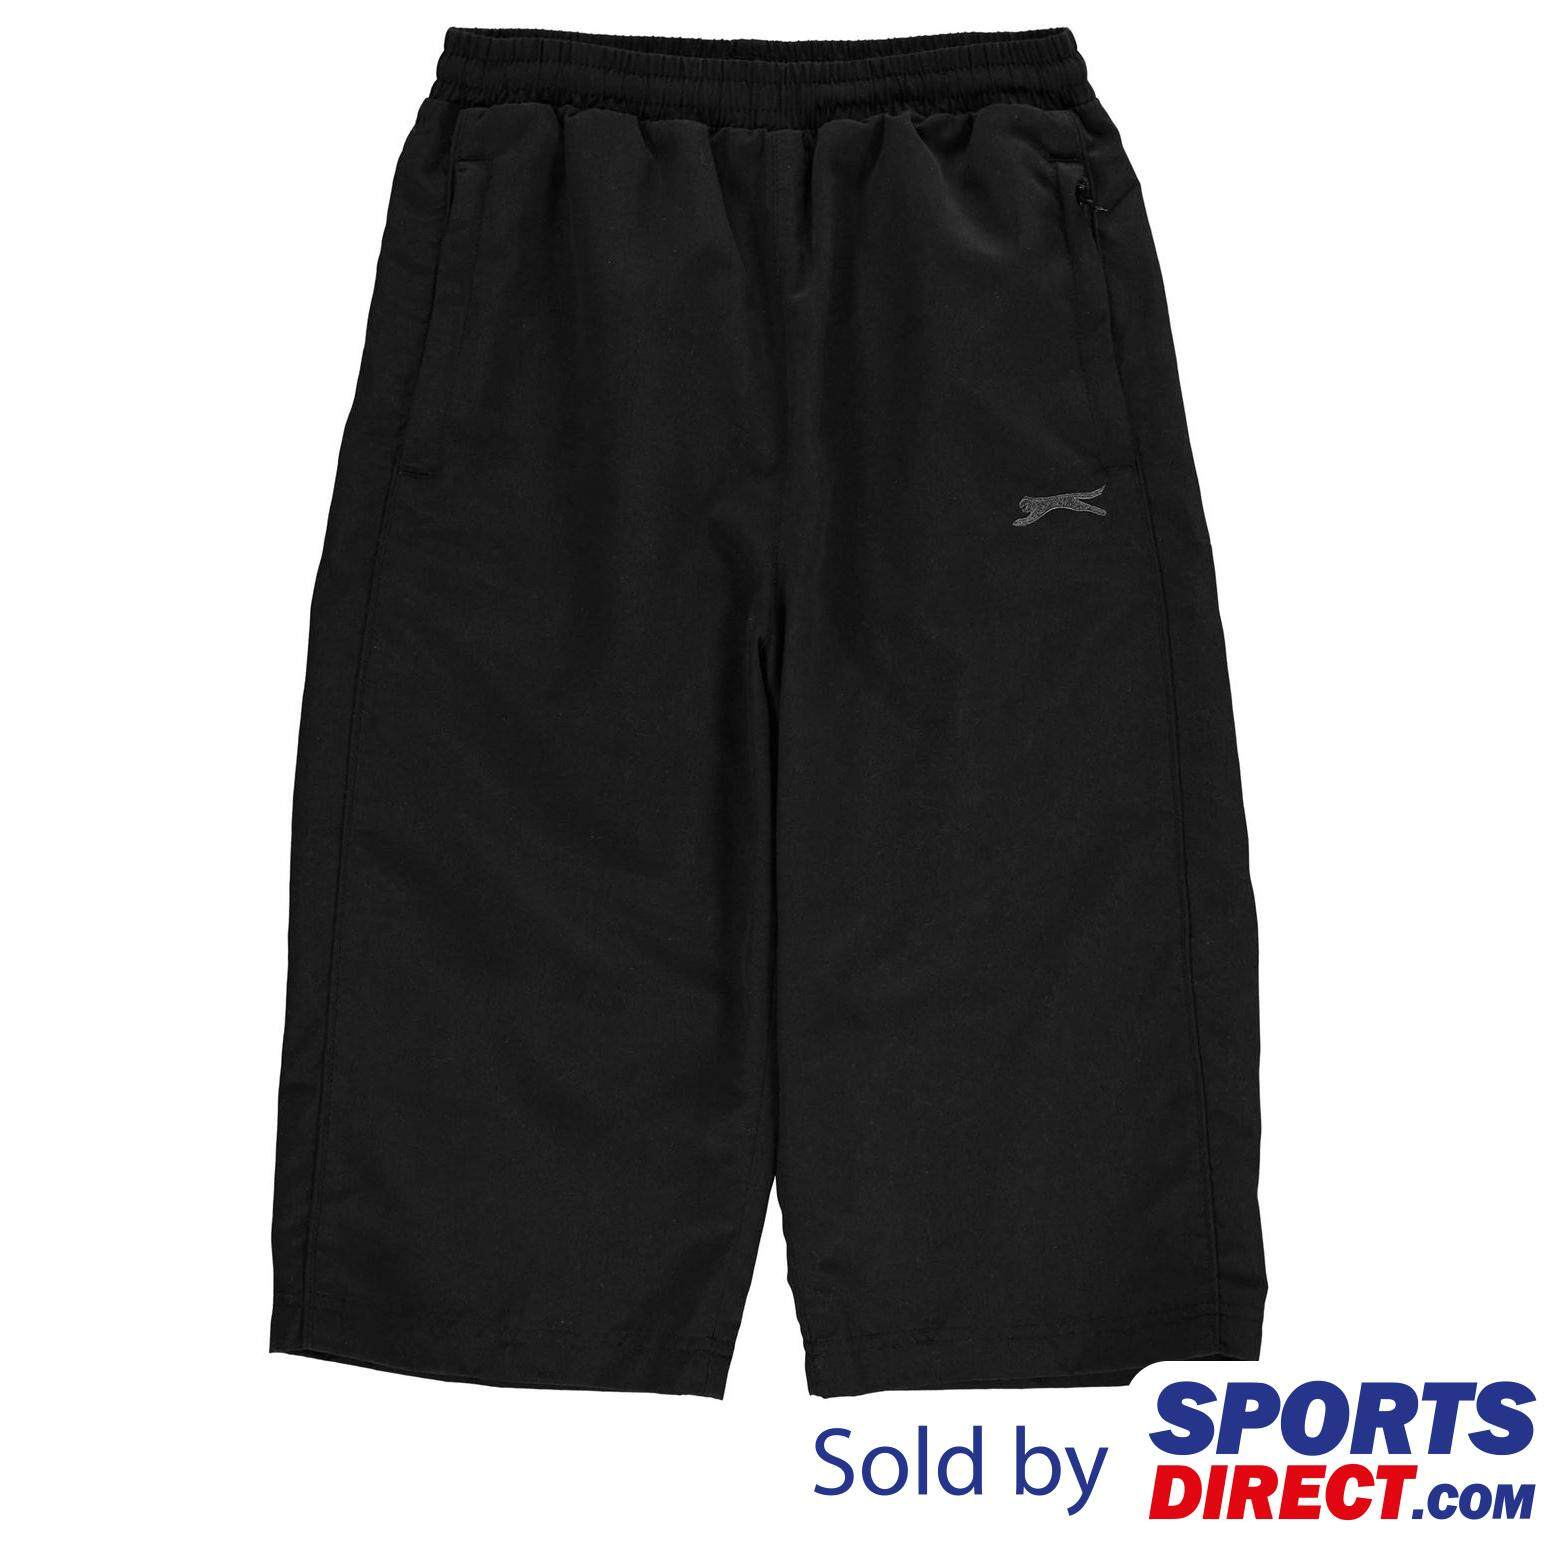 Slazenger Kids Boys Three Quarter Track Pants (black) By Sports Direct Mst Sdn Bhd.